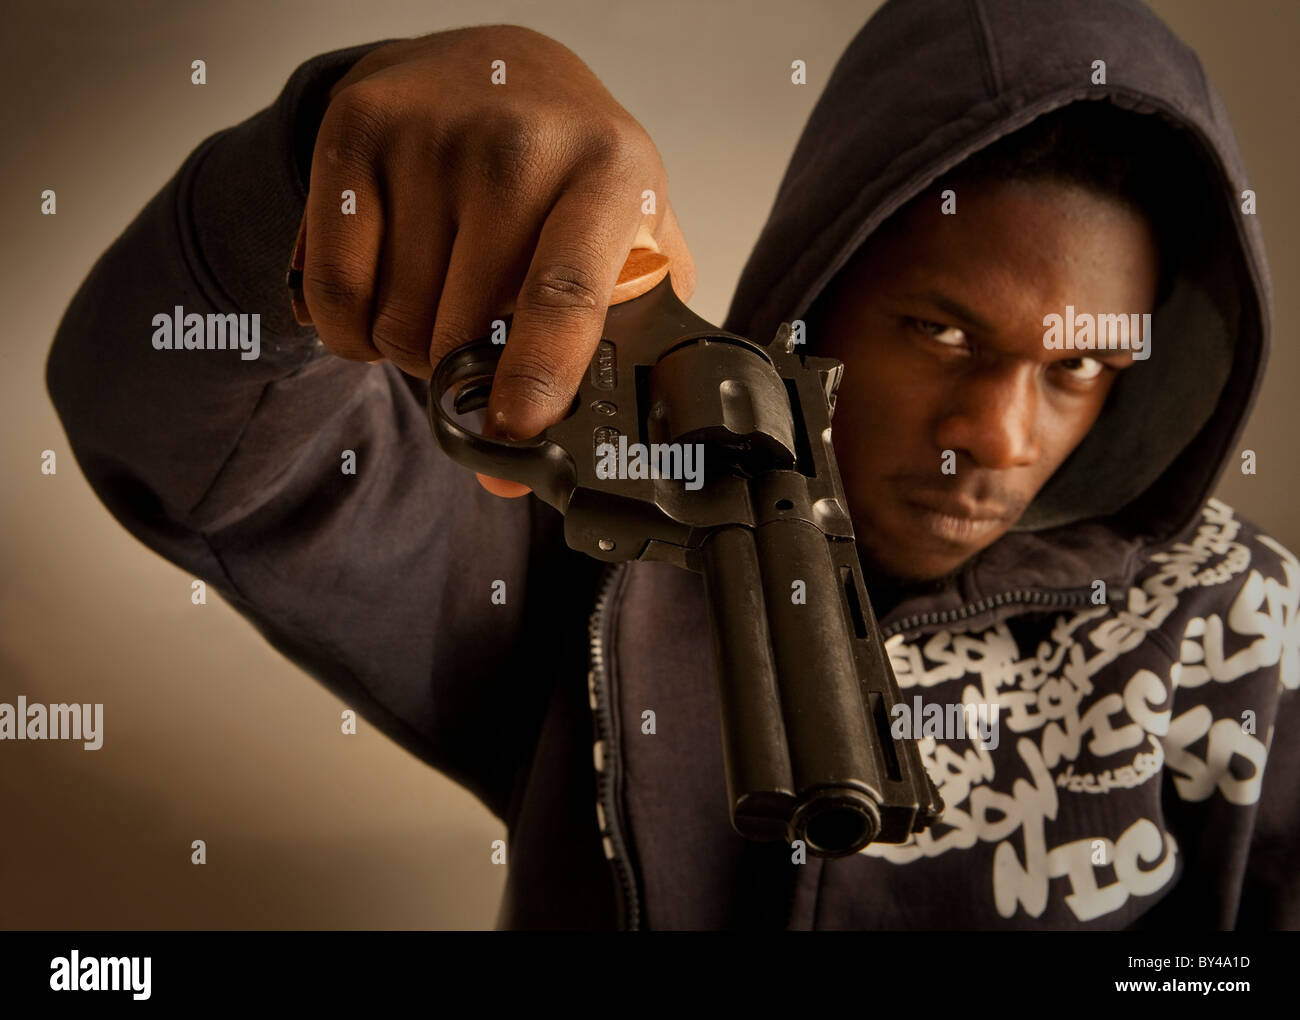 article about gangs and guns youth 1 introduction youth gangs are a universal phenomenon attracting increasing attention although variations in gang activity are observed across settings and contexts, the criminal and antisocial behavior of youth gangs is known to have an adverse impact on local communities across the globe.